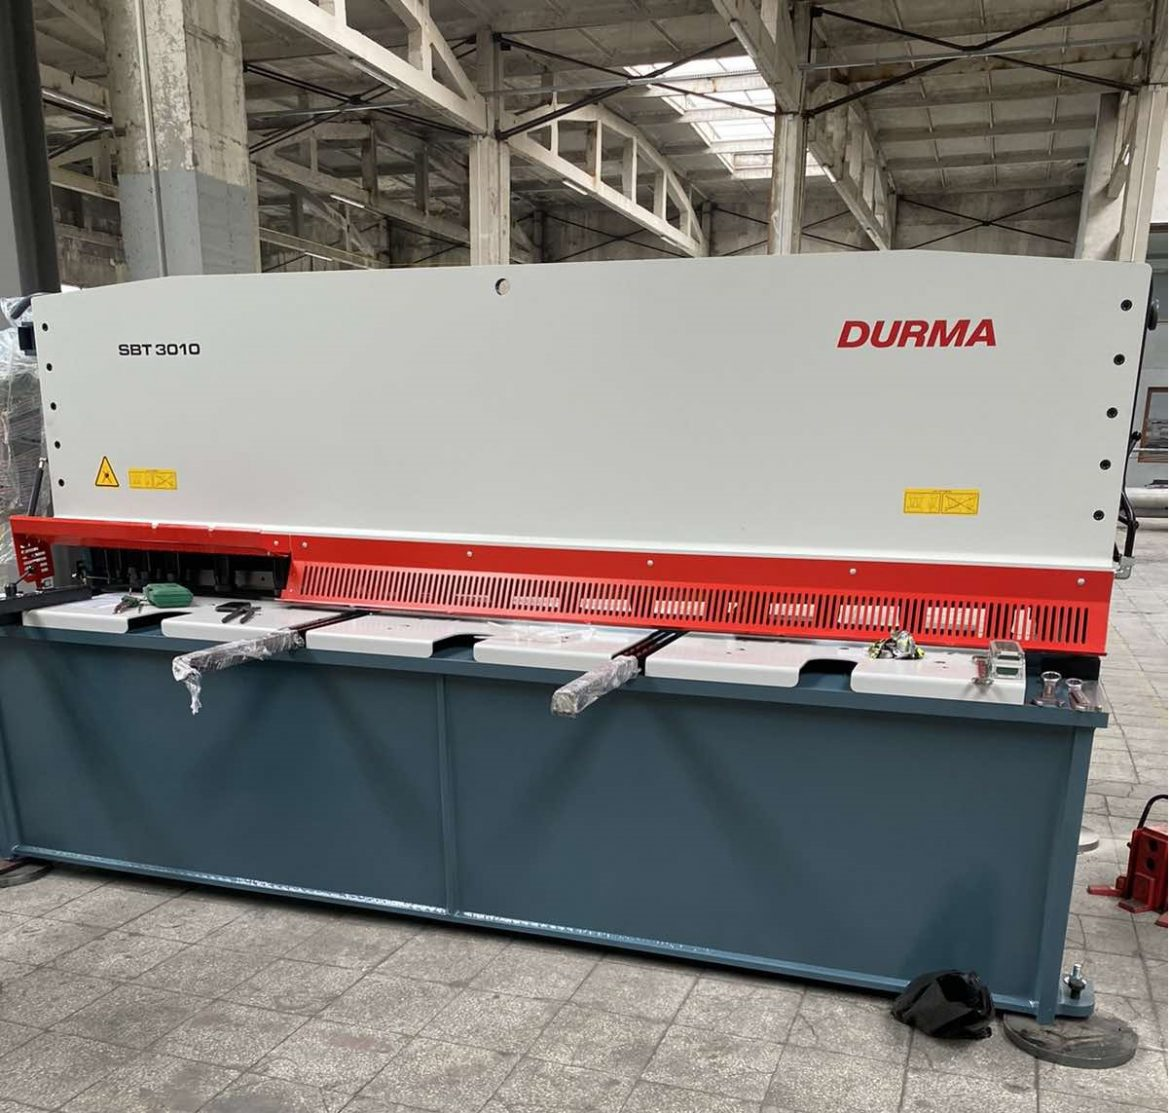 Durma CNC cutting